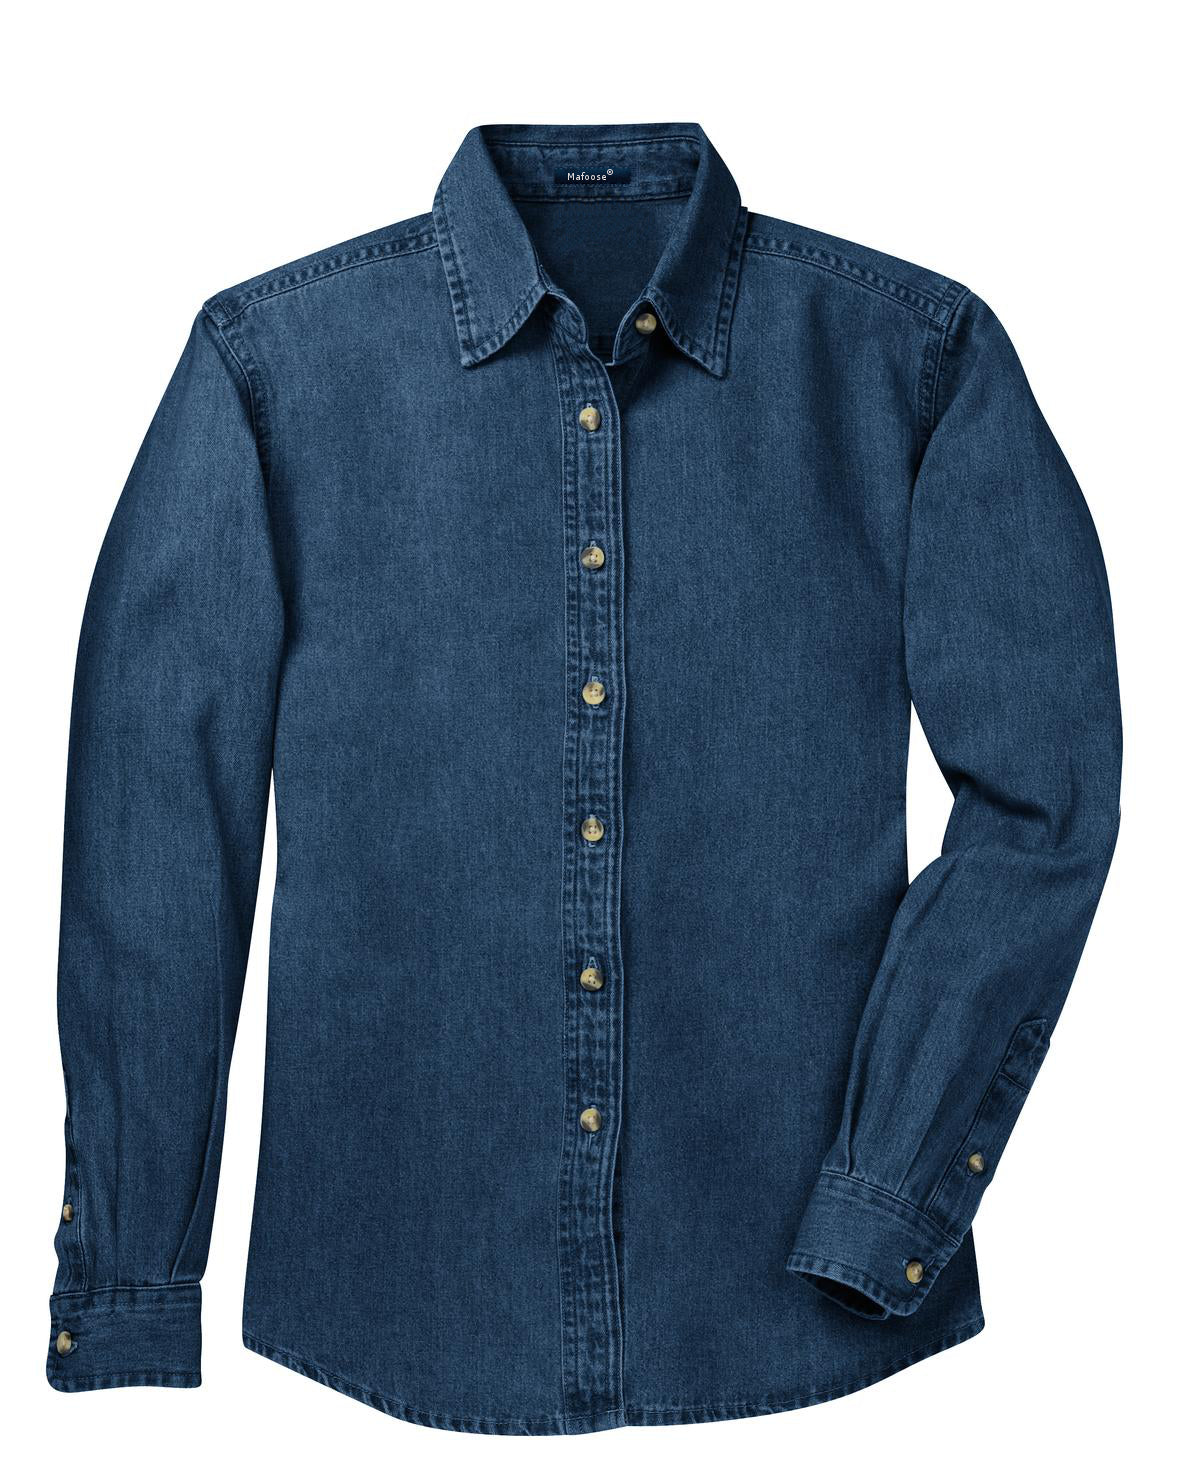 Mafoose Women's Long Sleeve Value Denim Shirt Ink Blue-Front